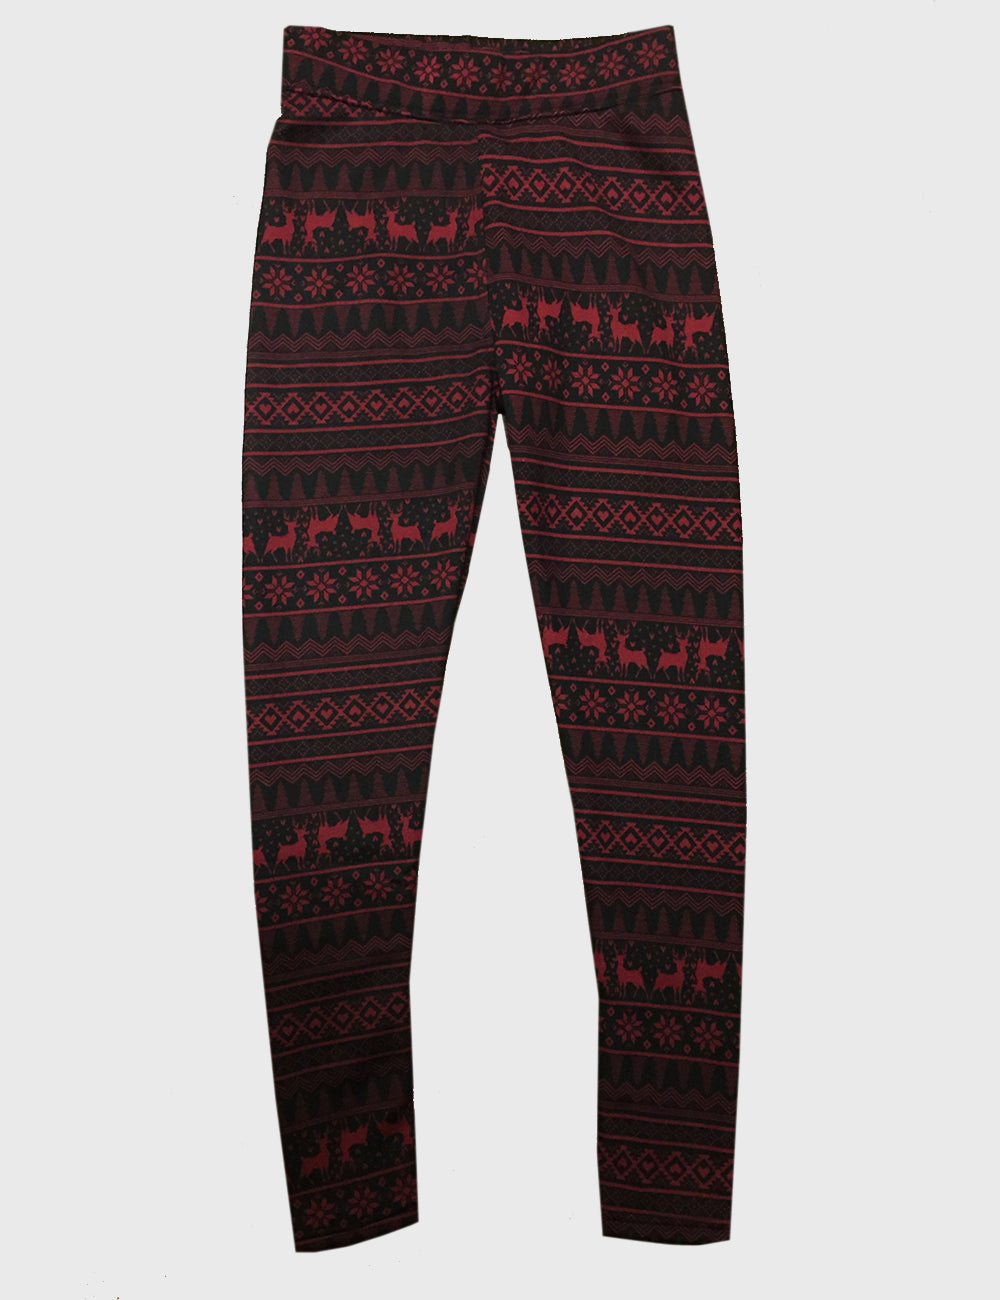 Reindeer Fleece Lined Leggings